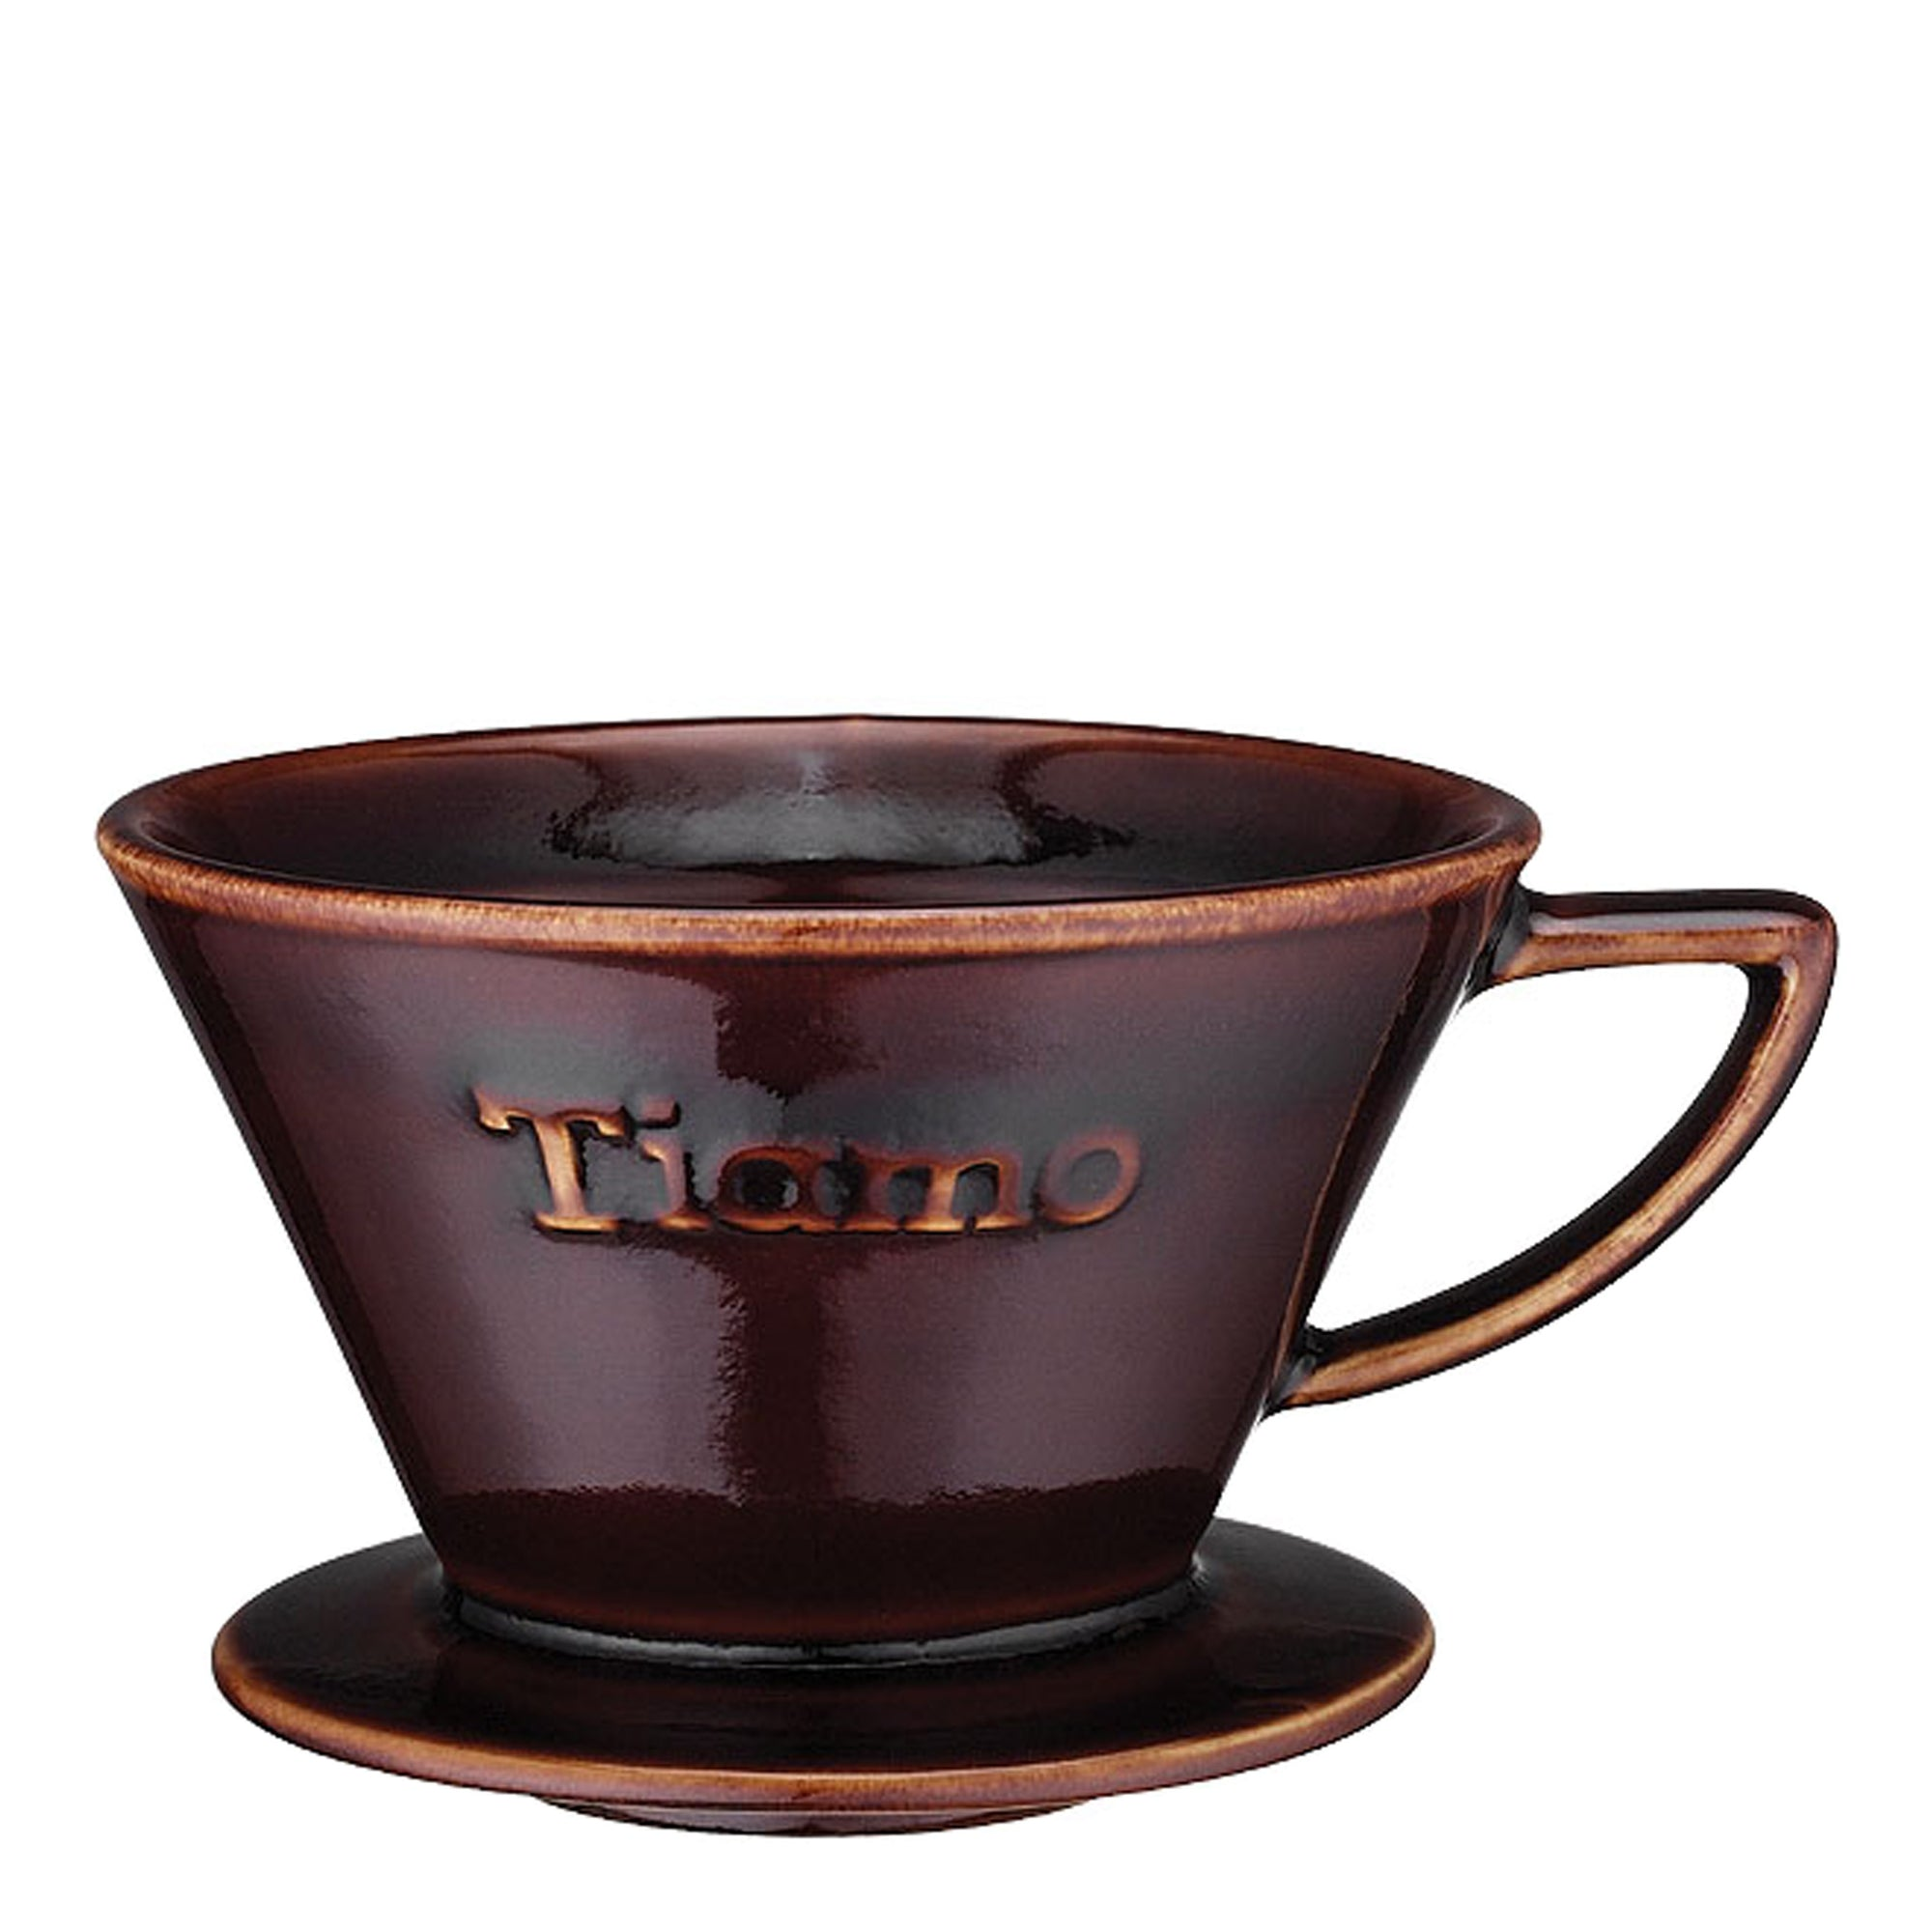 Filter K02 - ceramic brown - Tiamo - Espresso Gear